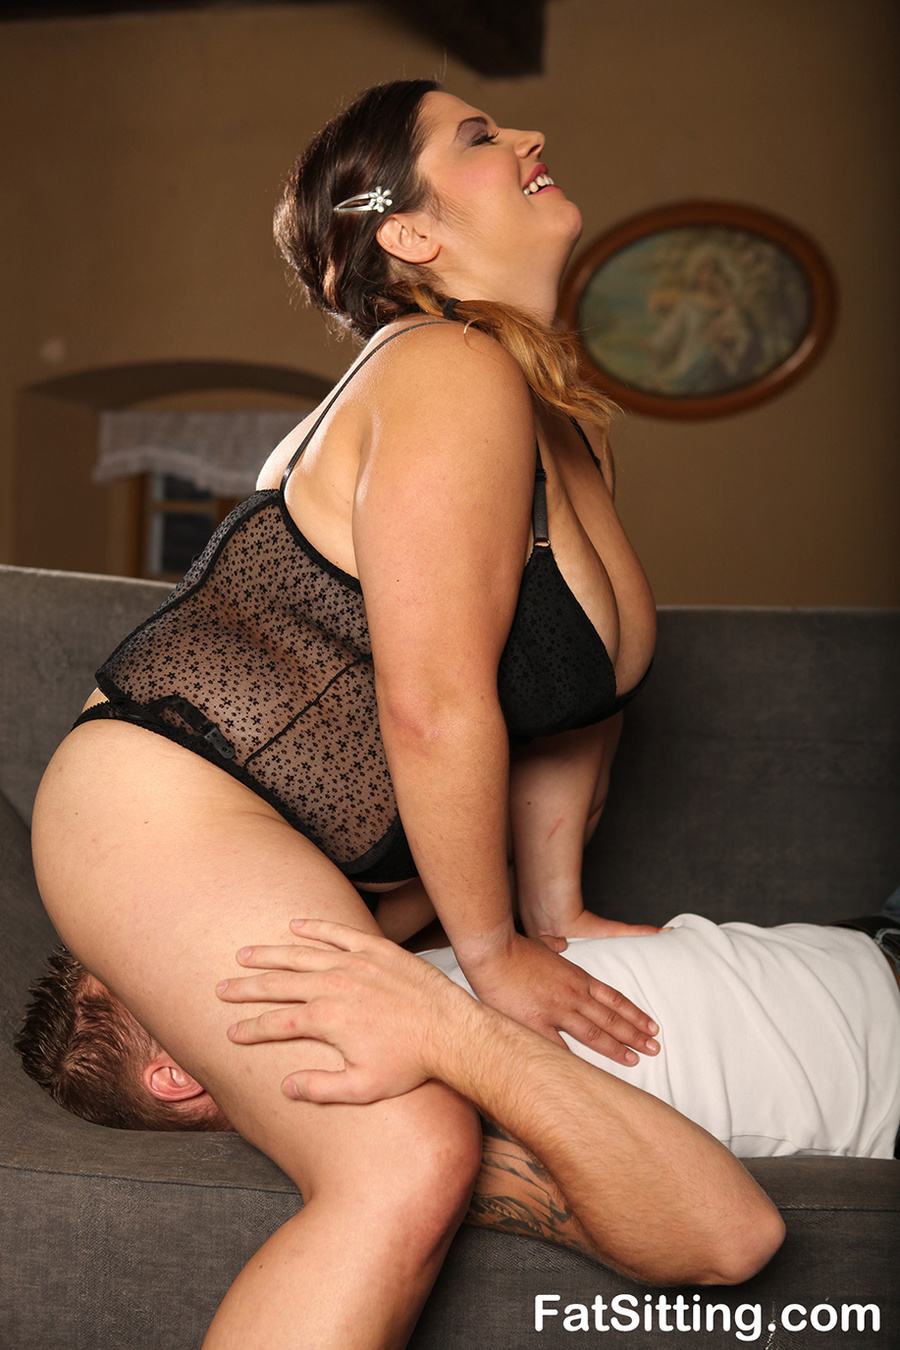 Free online videos of bbw sex